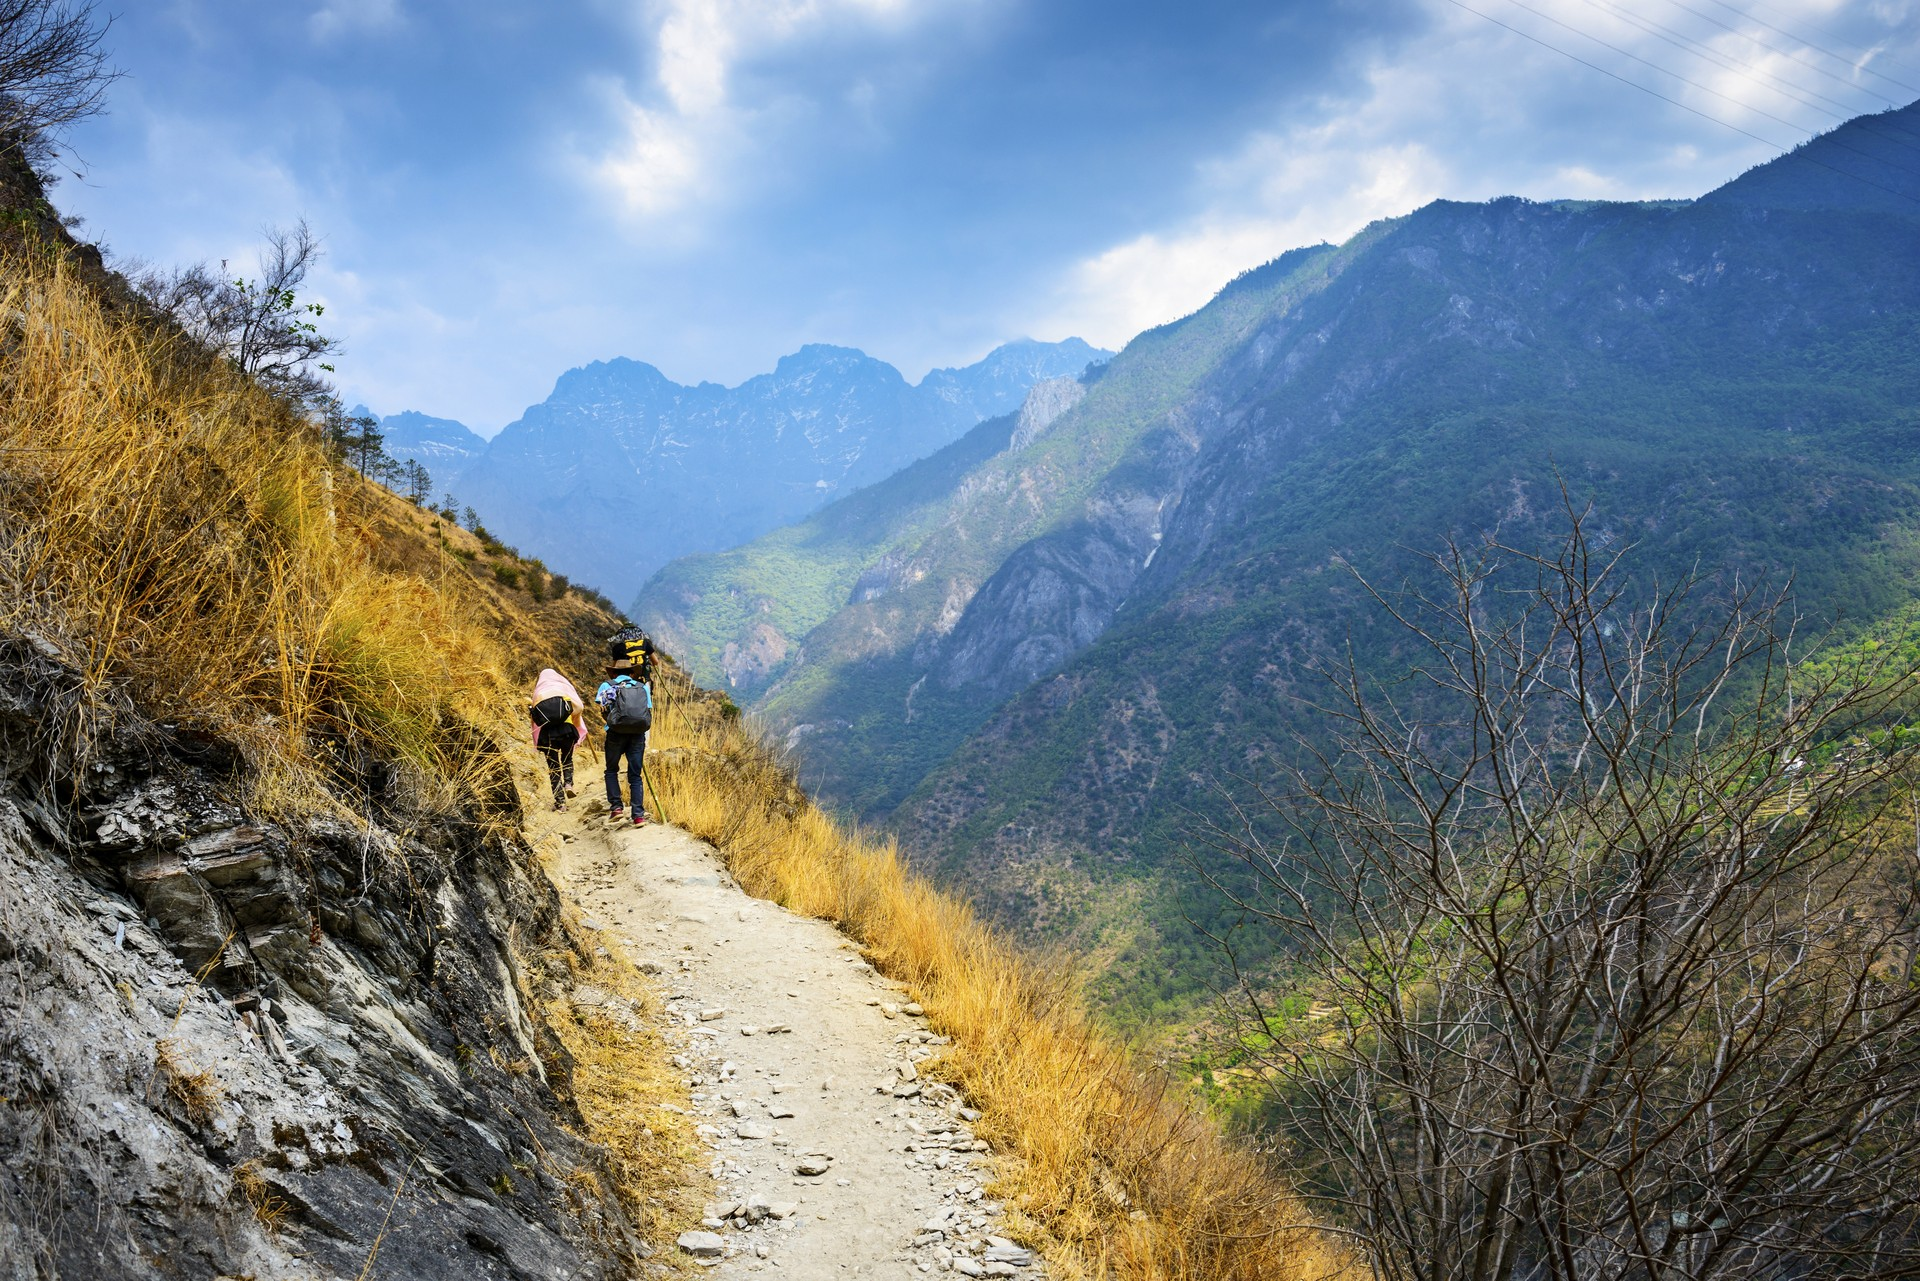 Hikers trekking along Tiger Leaping Gorge in China